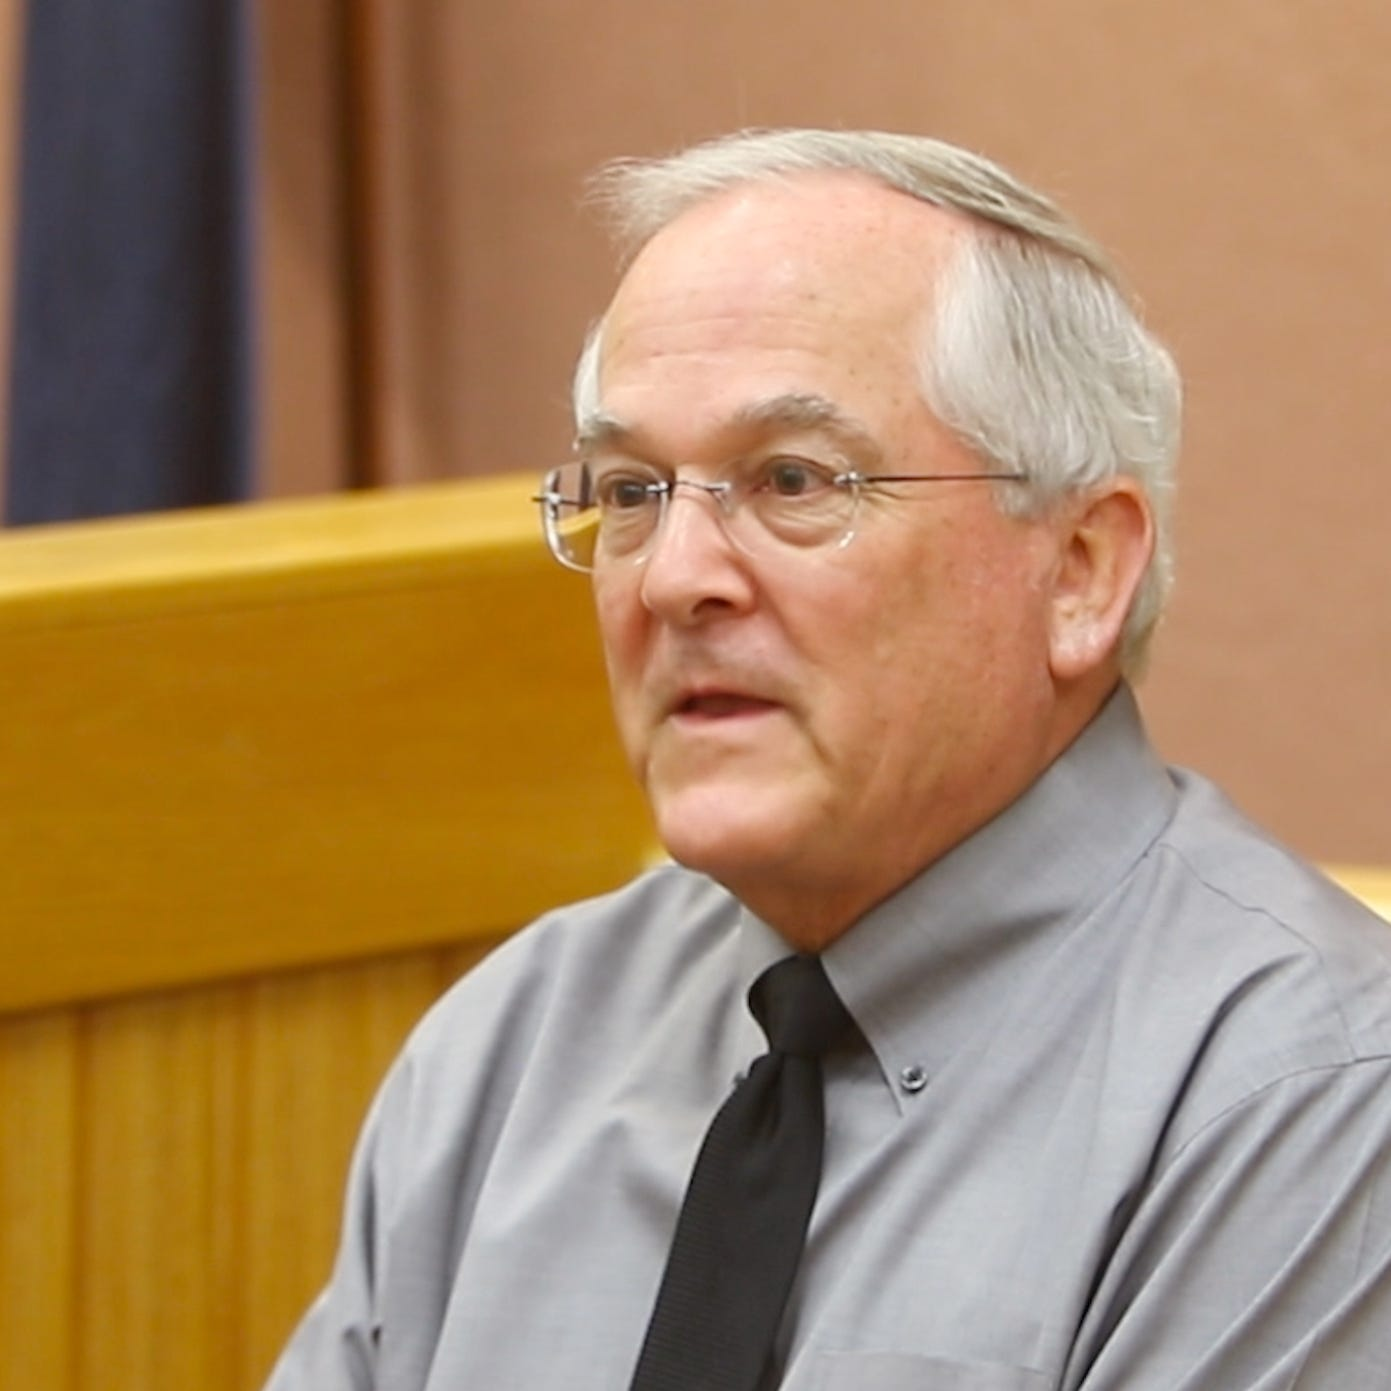 Judge David Reader resignation gives Whitmer appointment to local courts